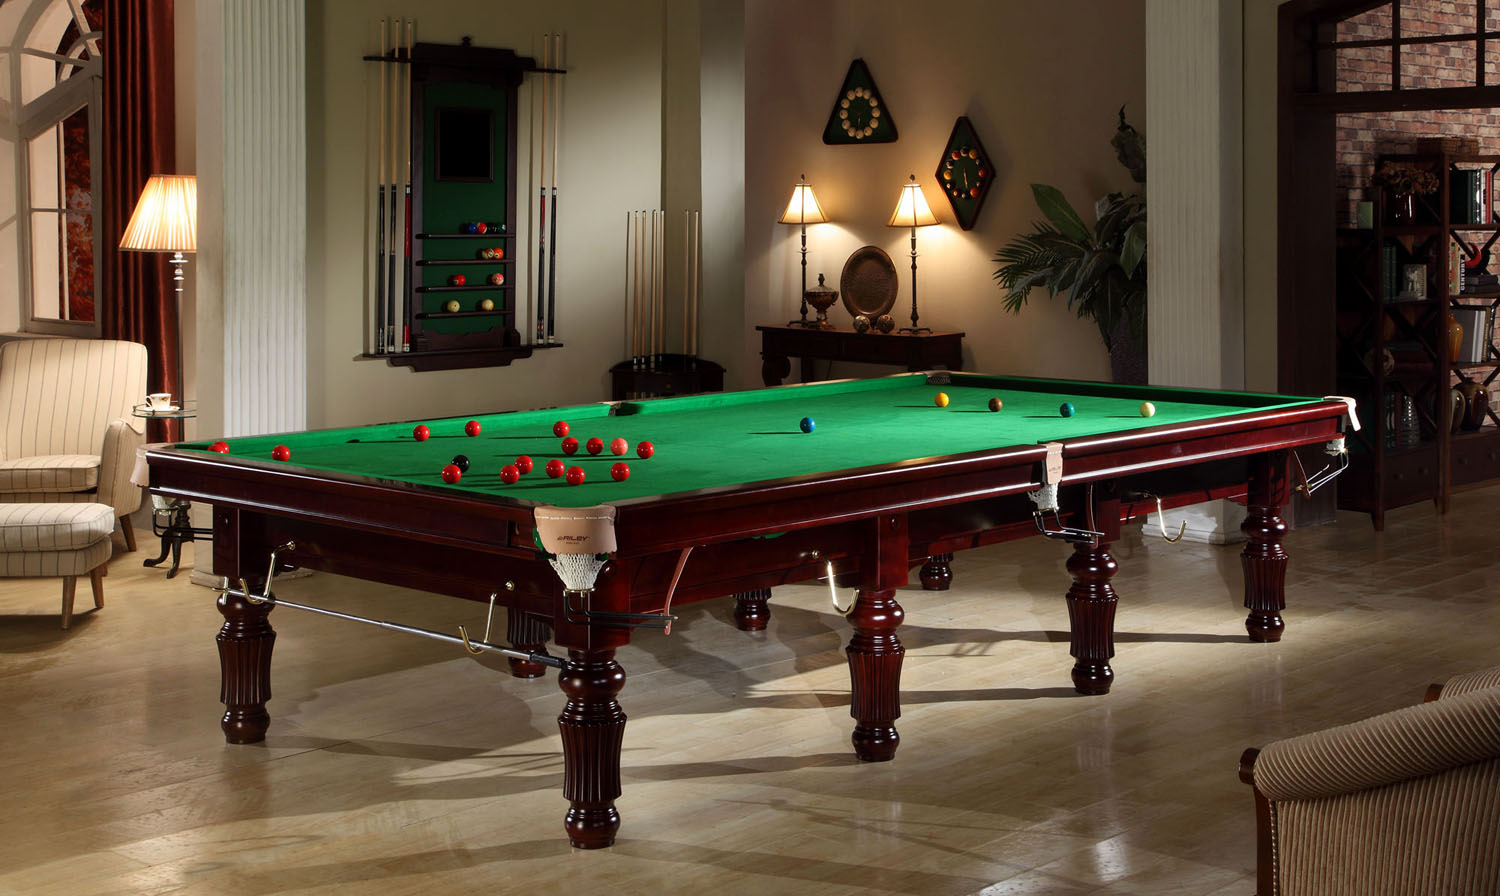 http://www.legobilliards.com.cn/upload/images/201506/14349437626875.jpg